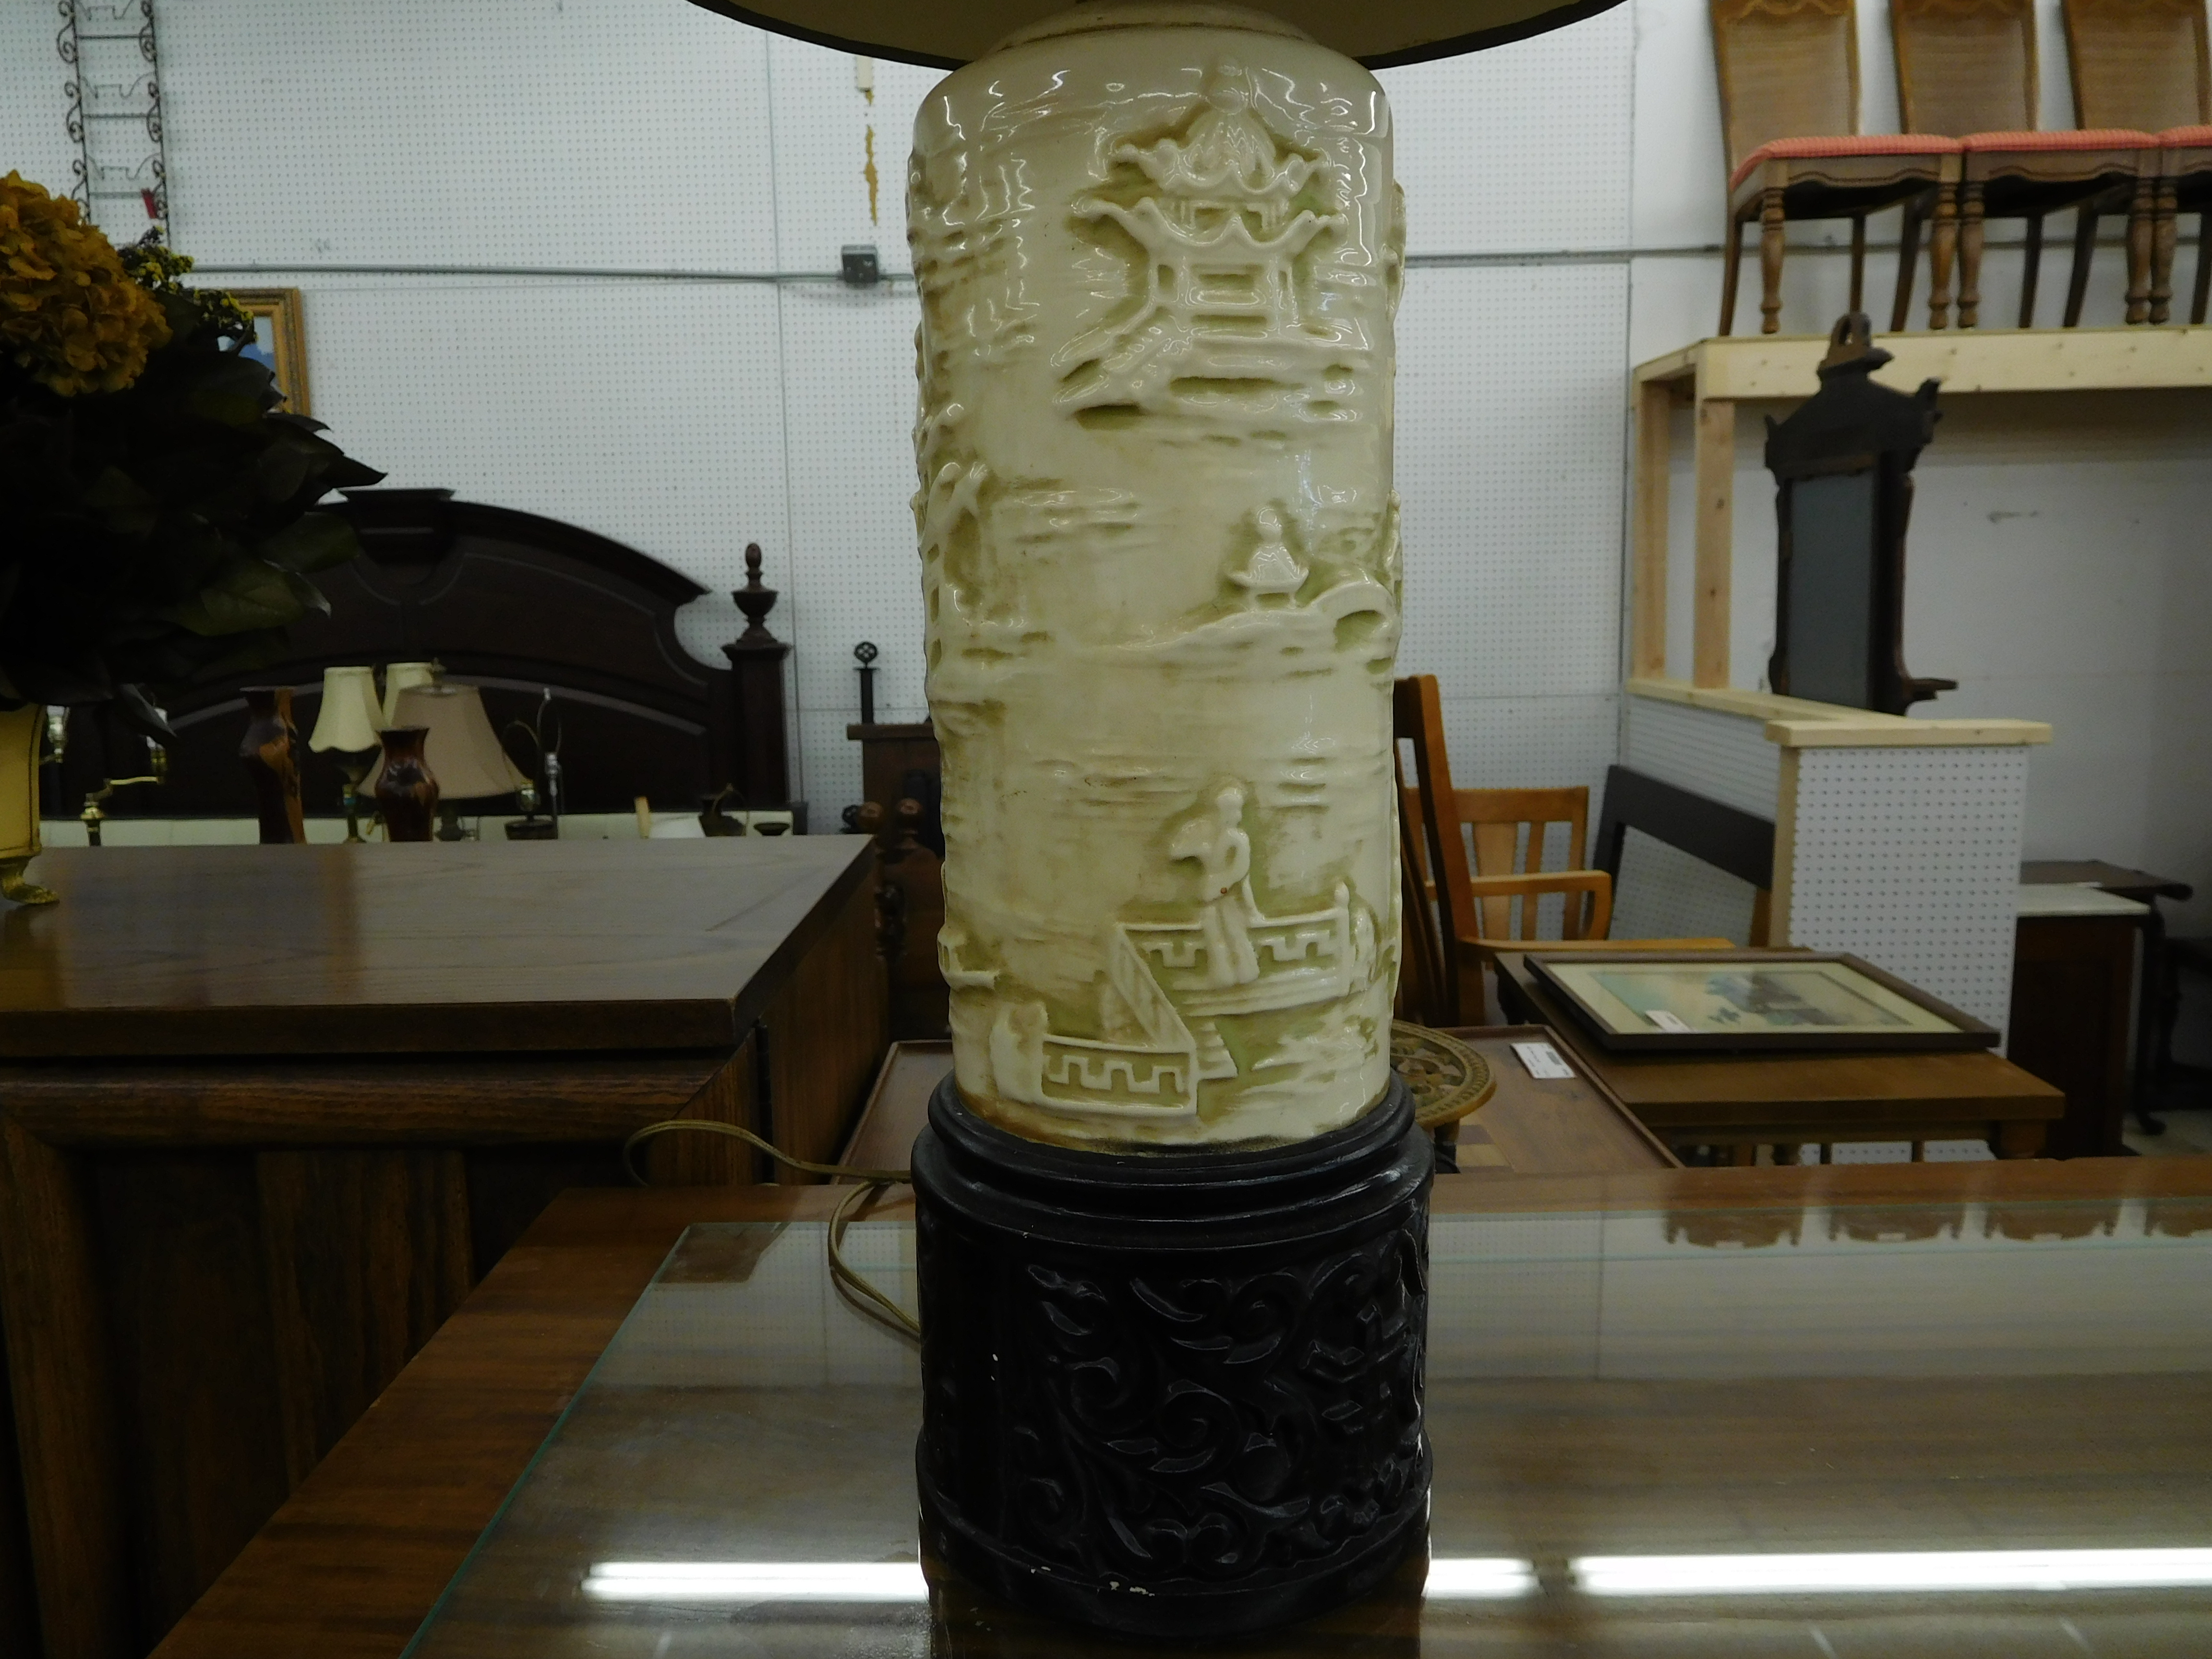 Vintage Ceramic Lamp with Sculpted Asian Design